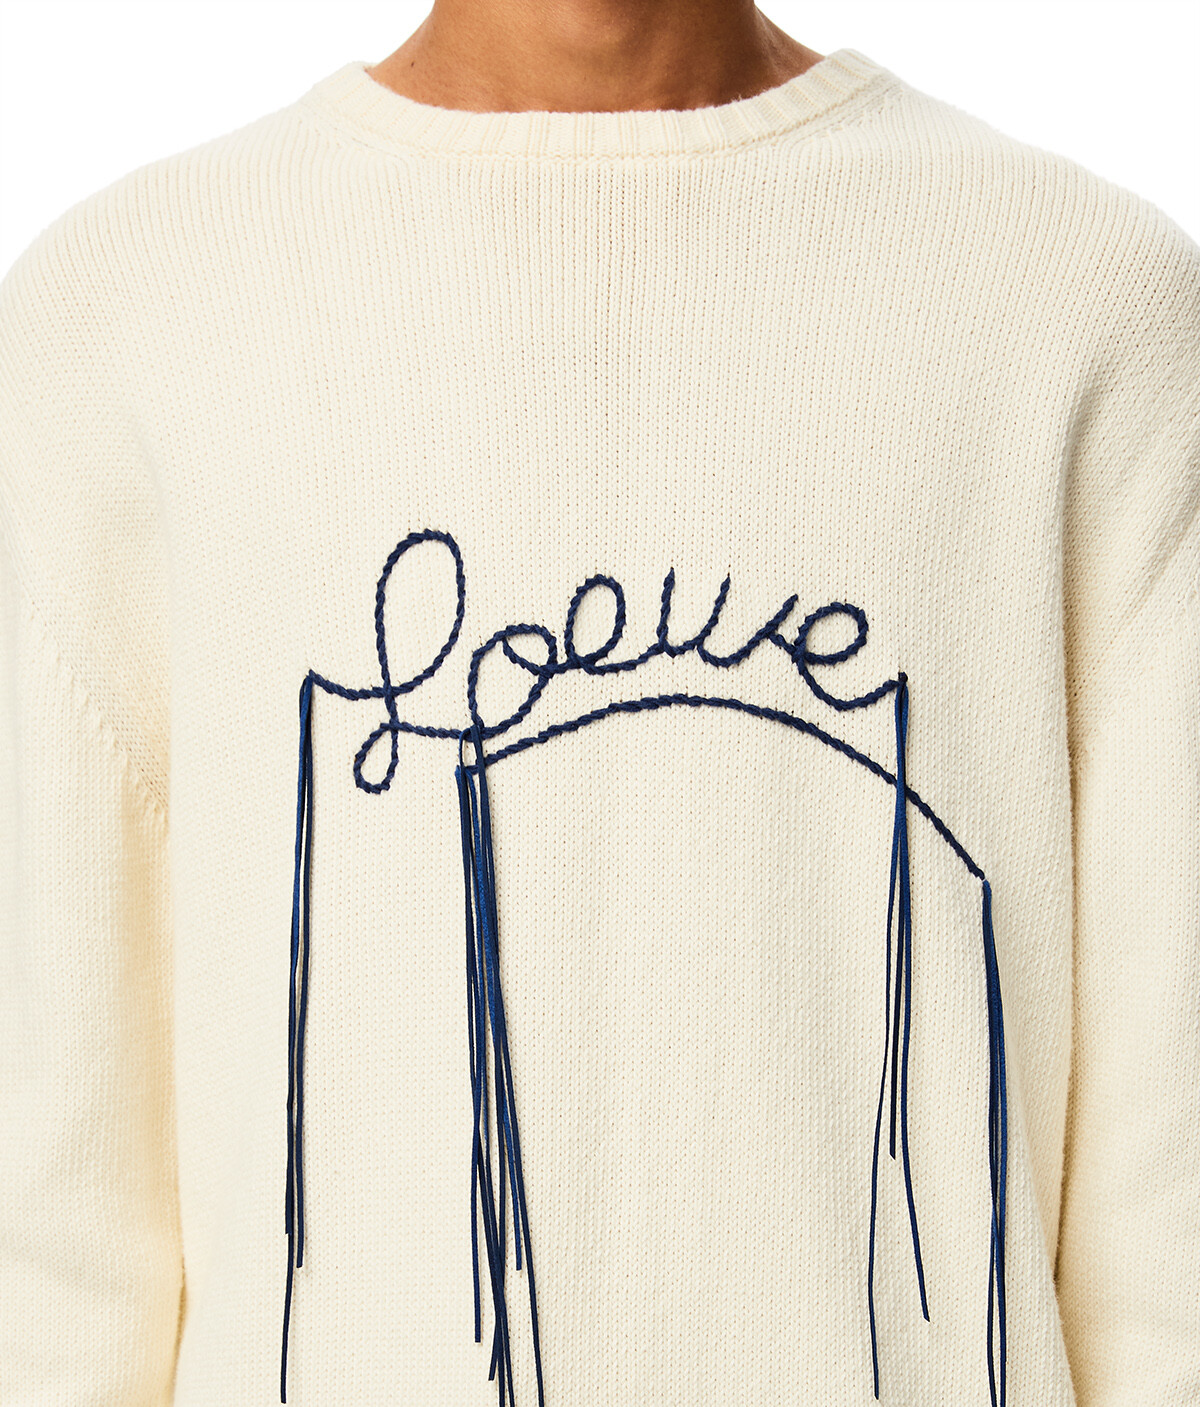 LOEWE Loewe Stitch Sweater Ecru/Navy Blue front